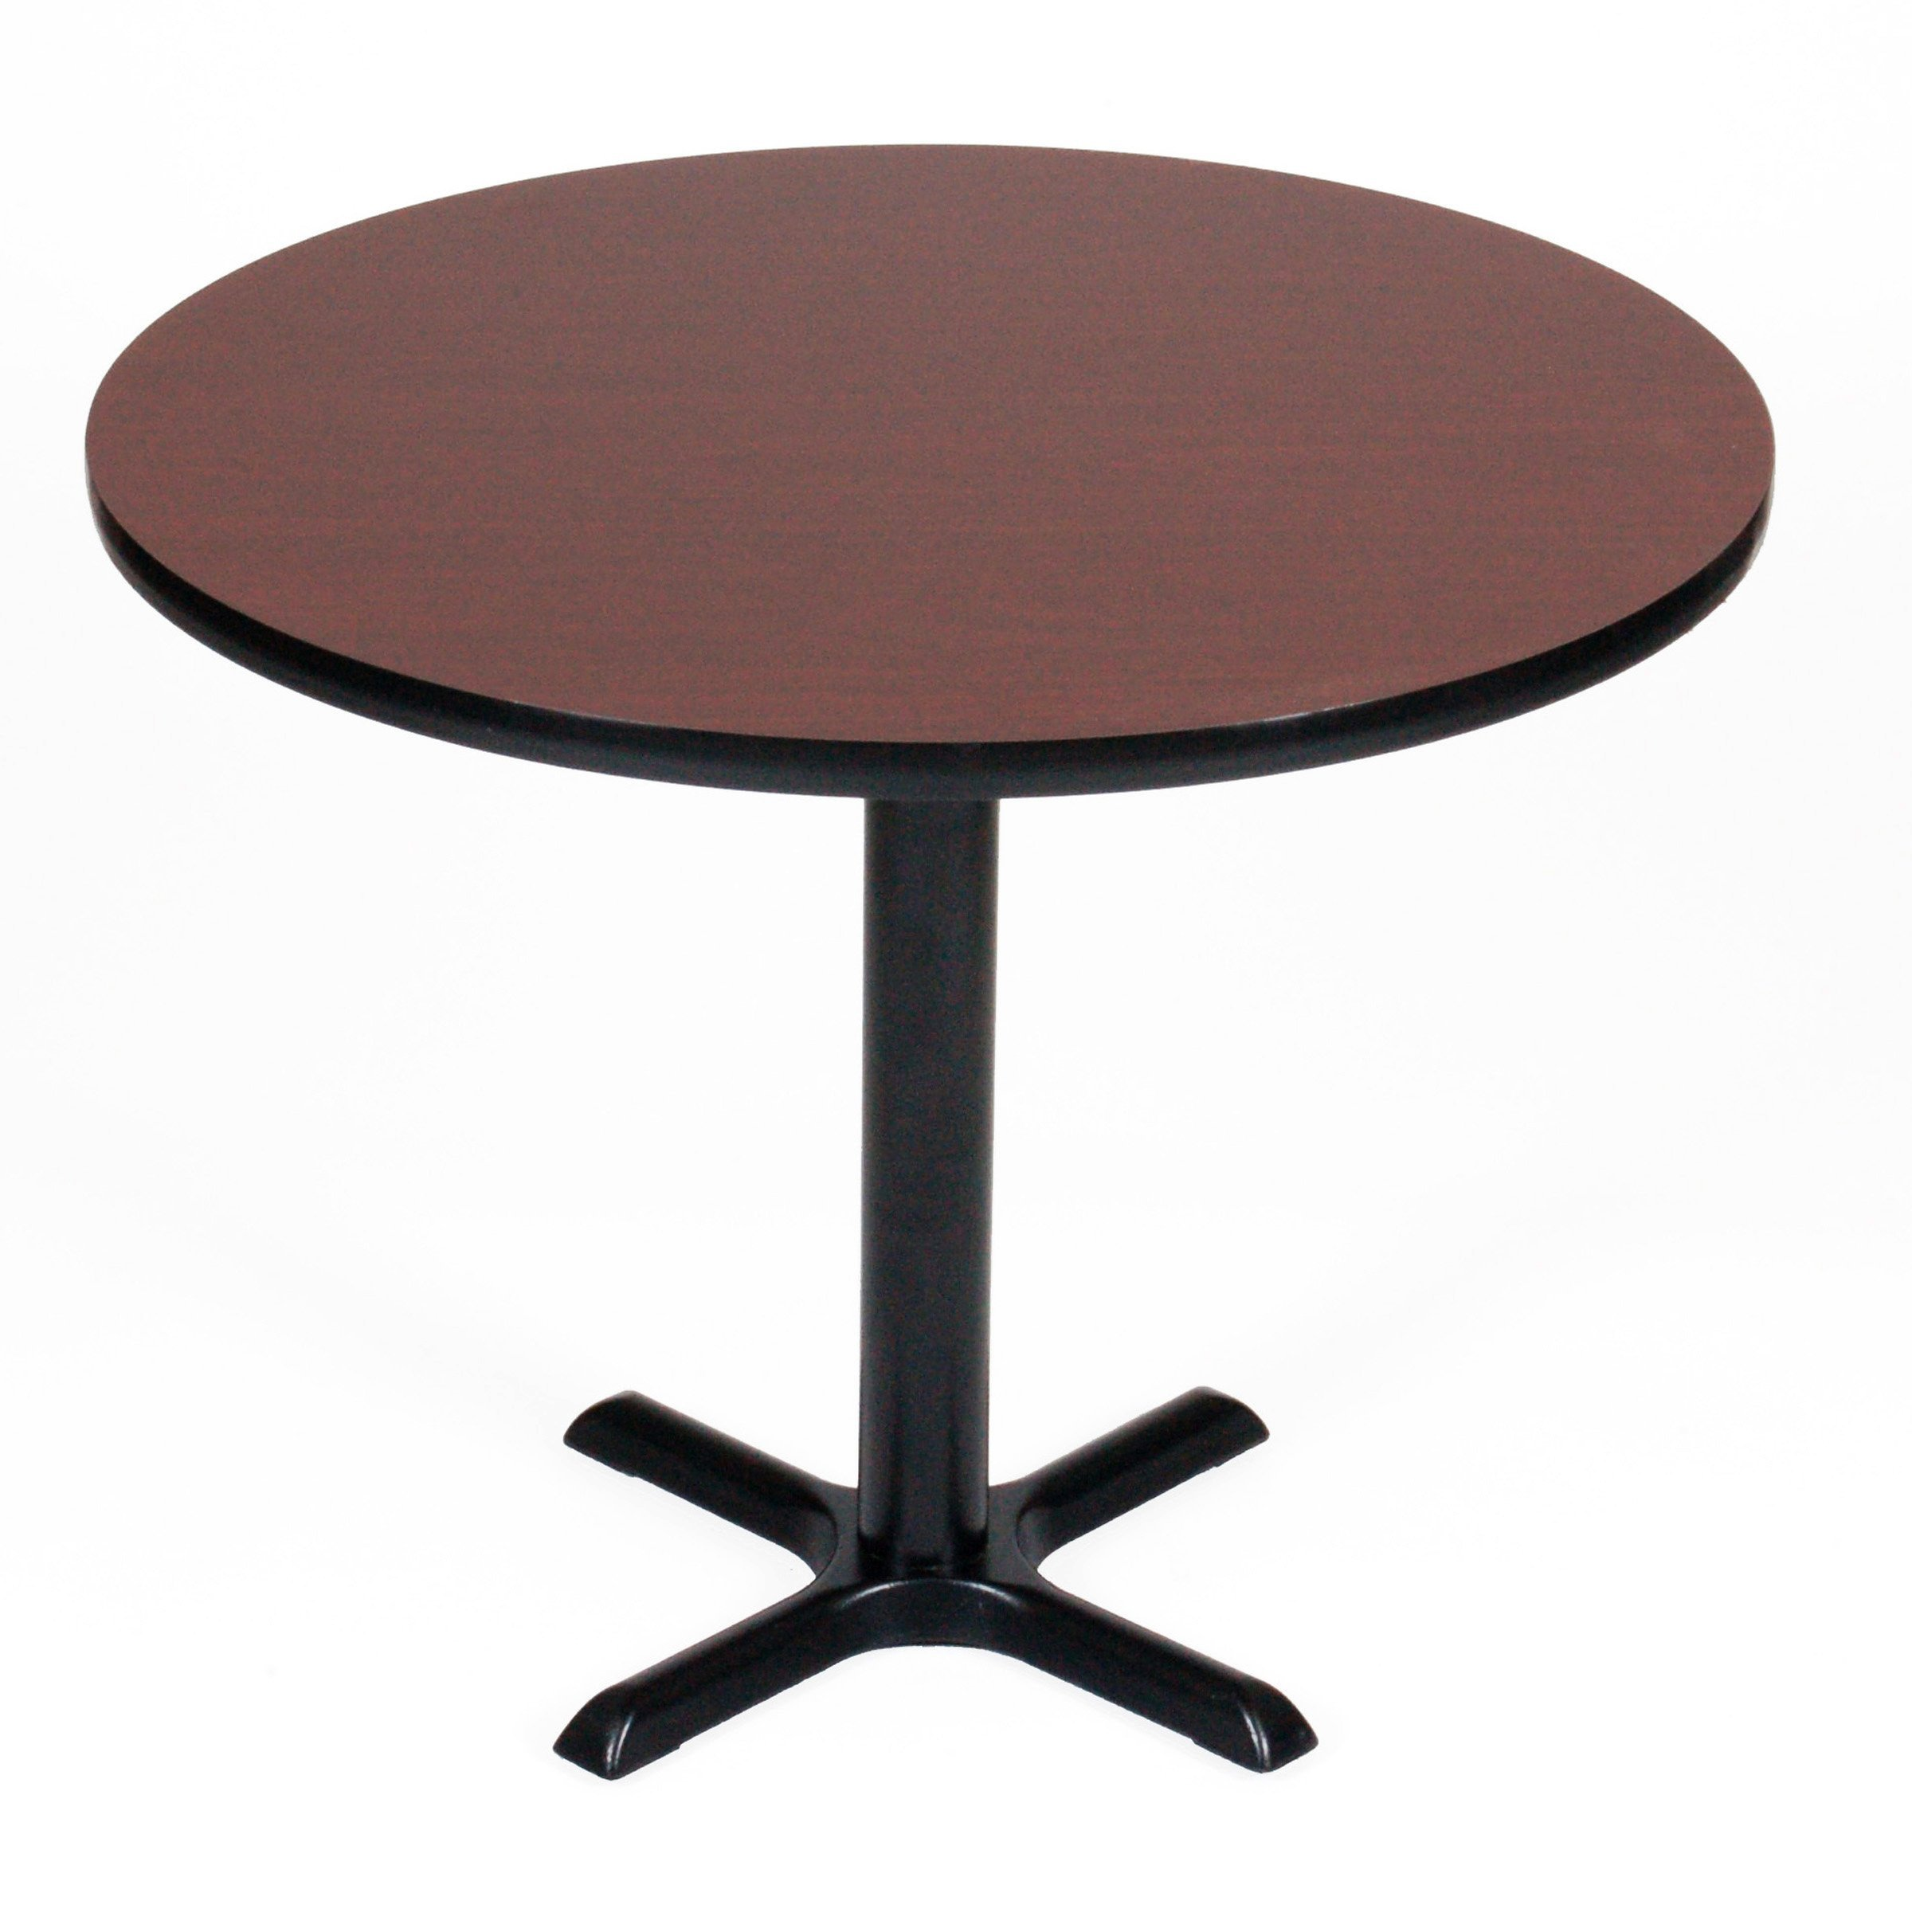 Correll BXT36R-21 Cherry Top and Black Base Round Bar, Café and Break Room Table, 36'' by Correll